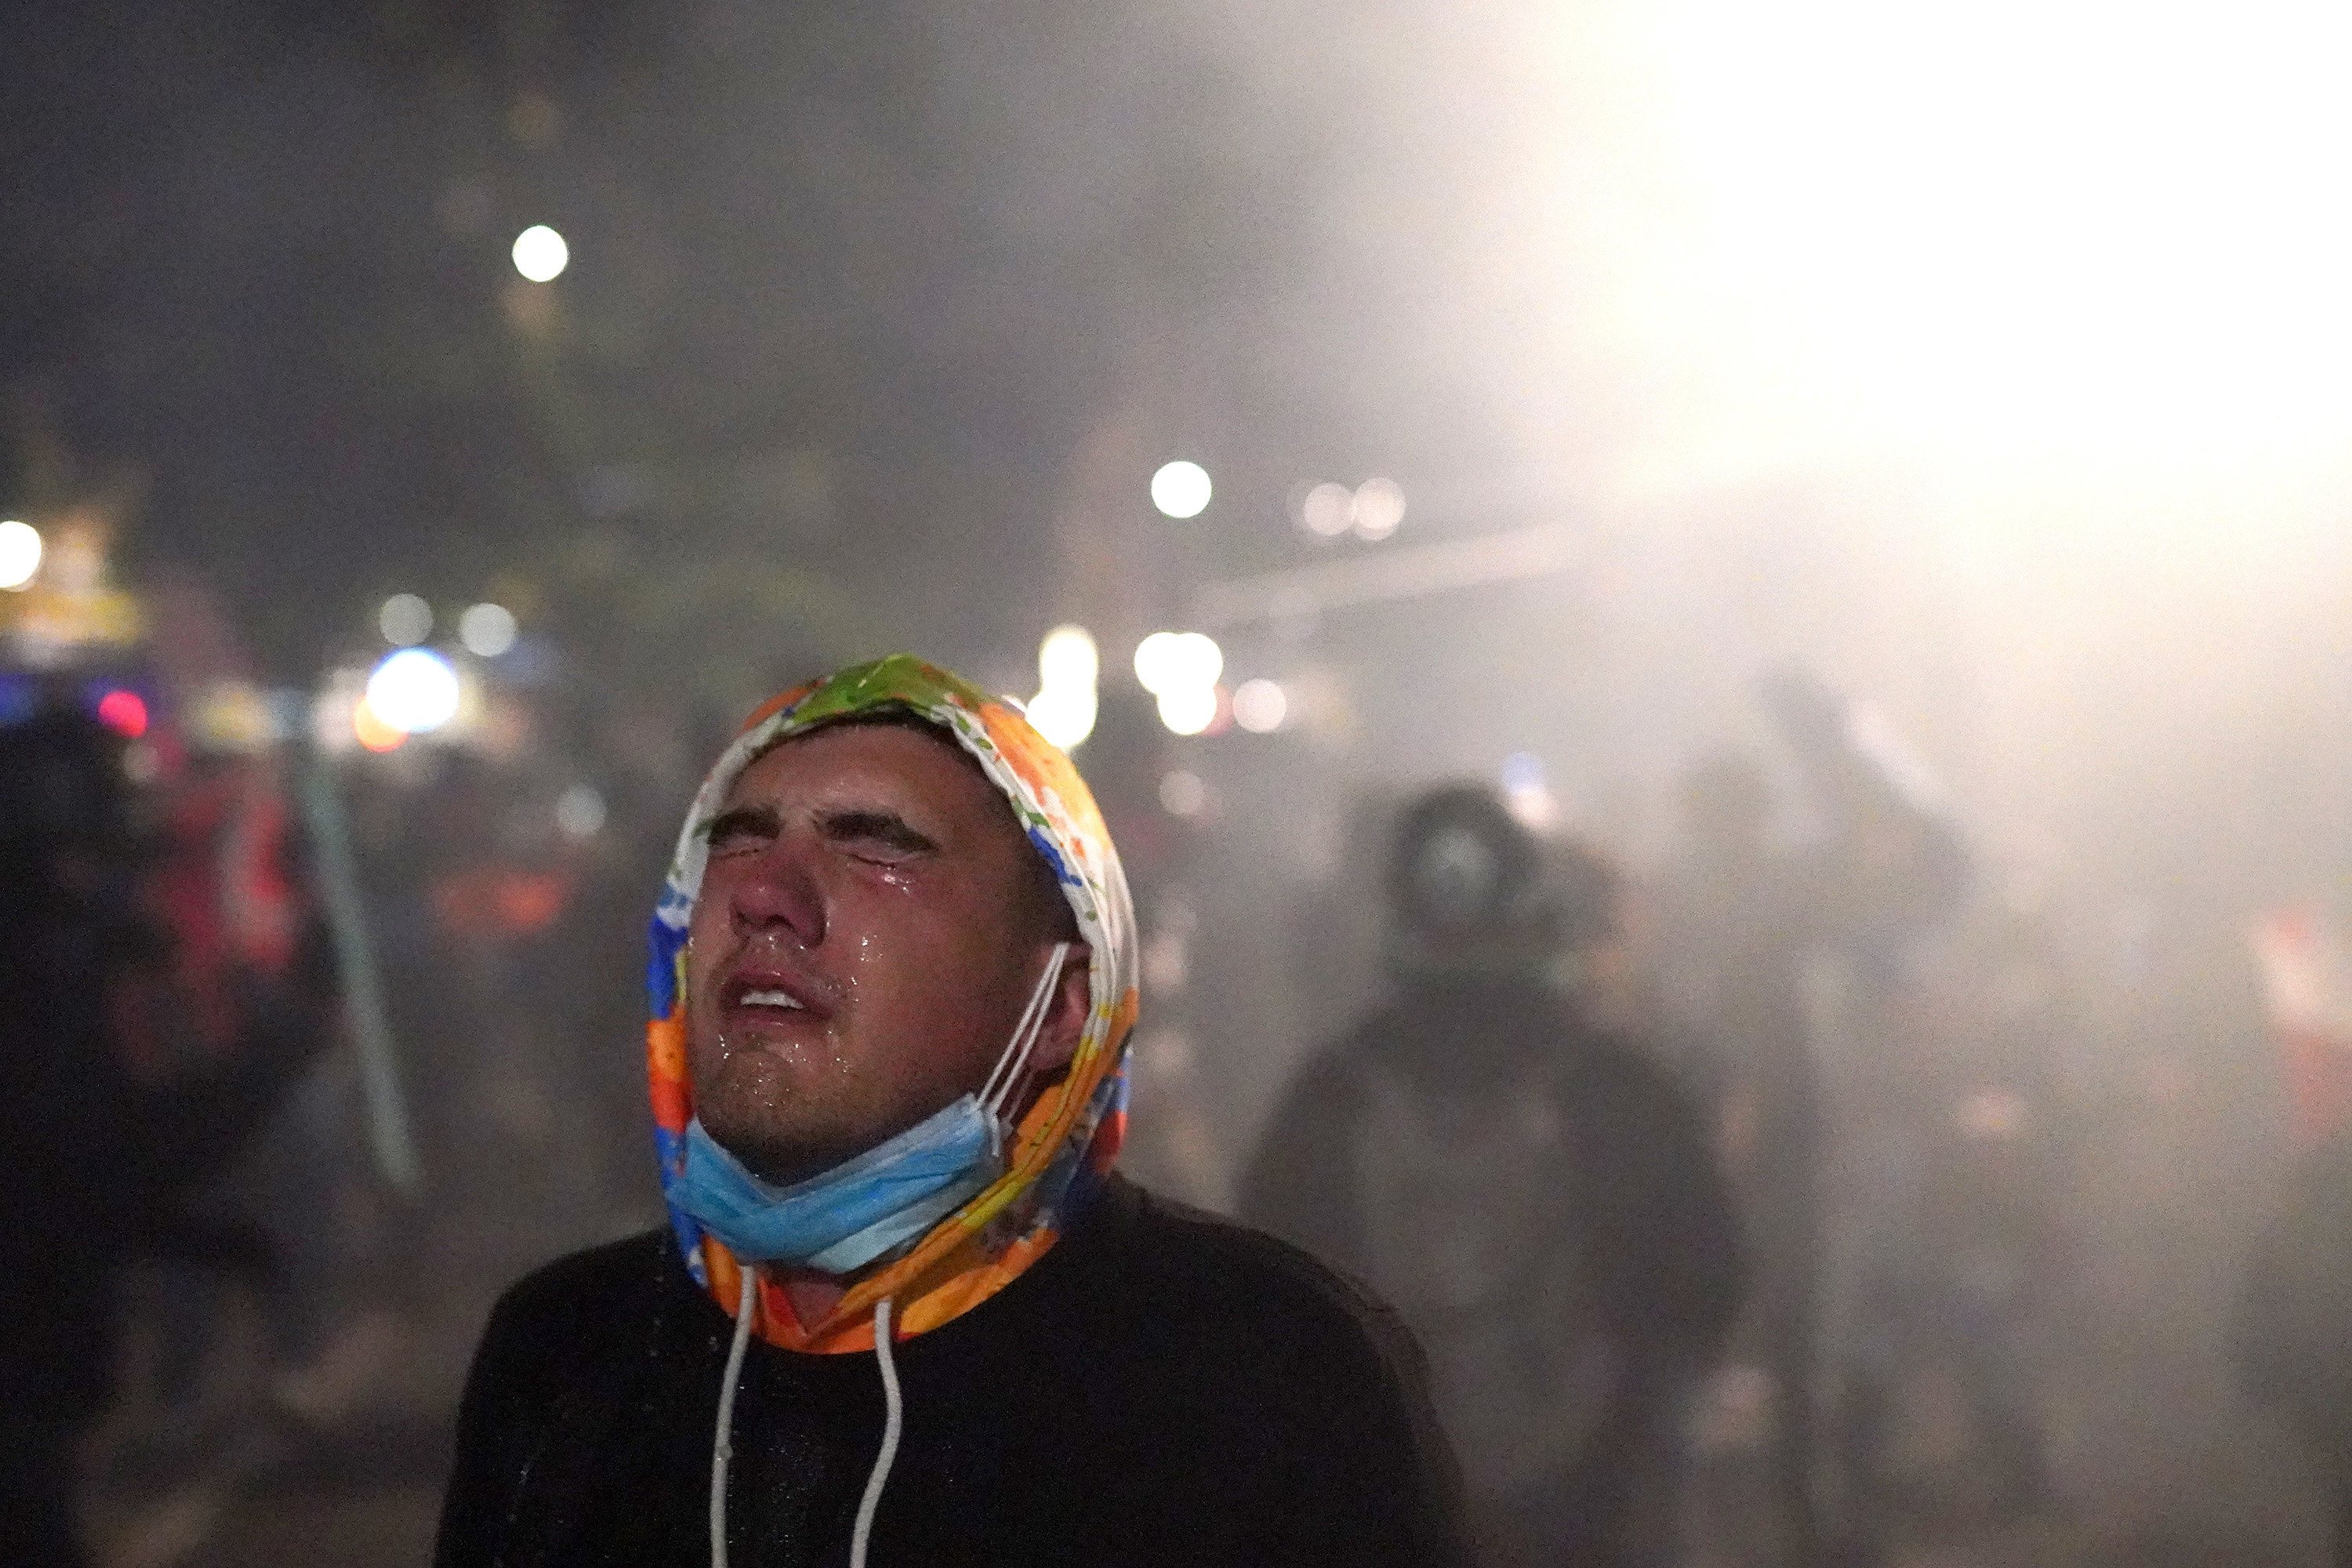 A protester closes his eyes as water steams from them after tear gas was fired by federal officers during a demonstration